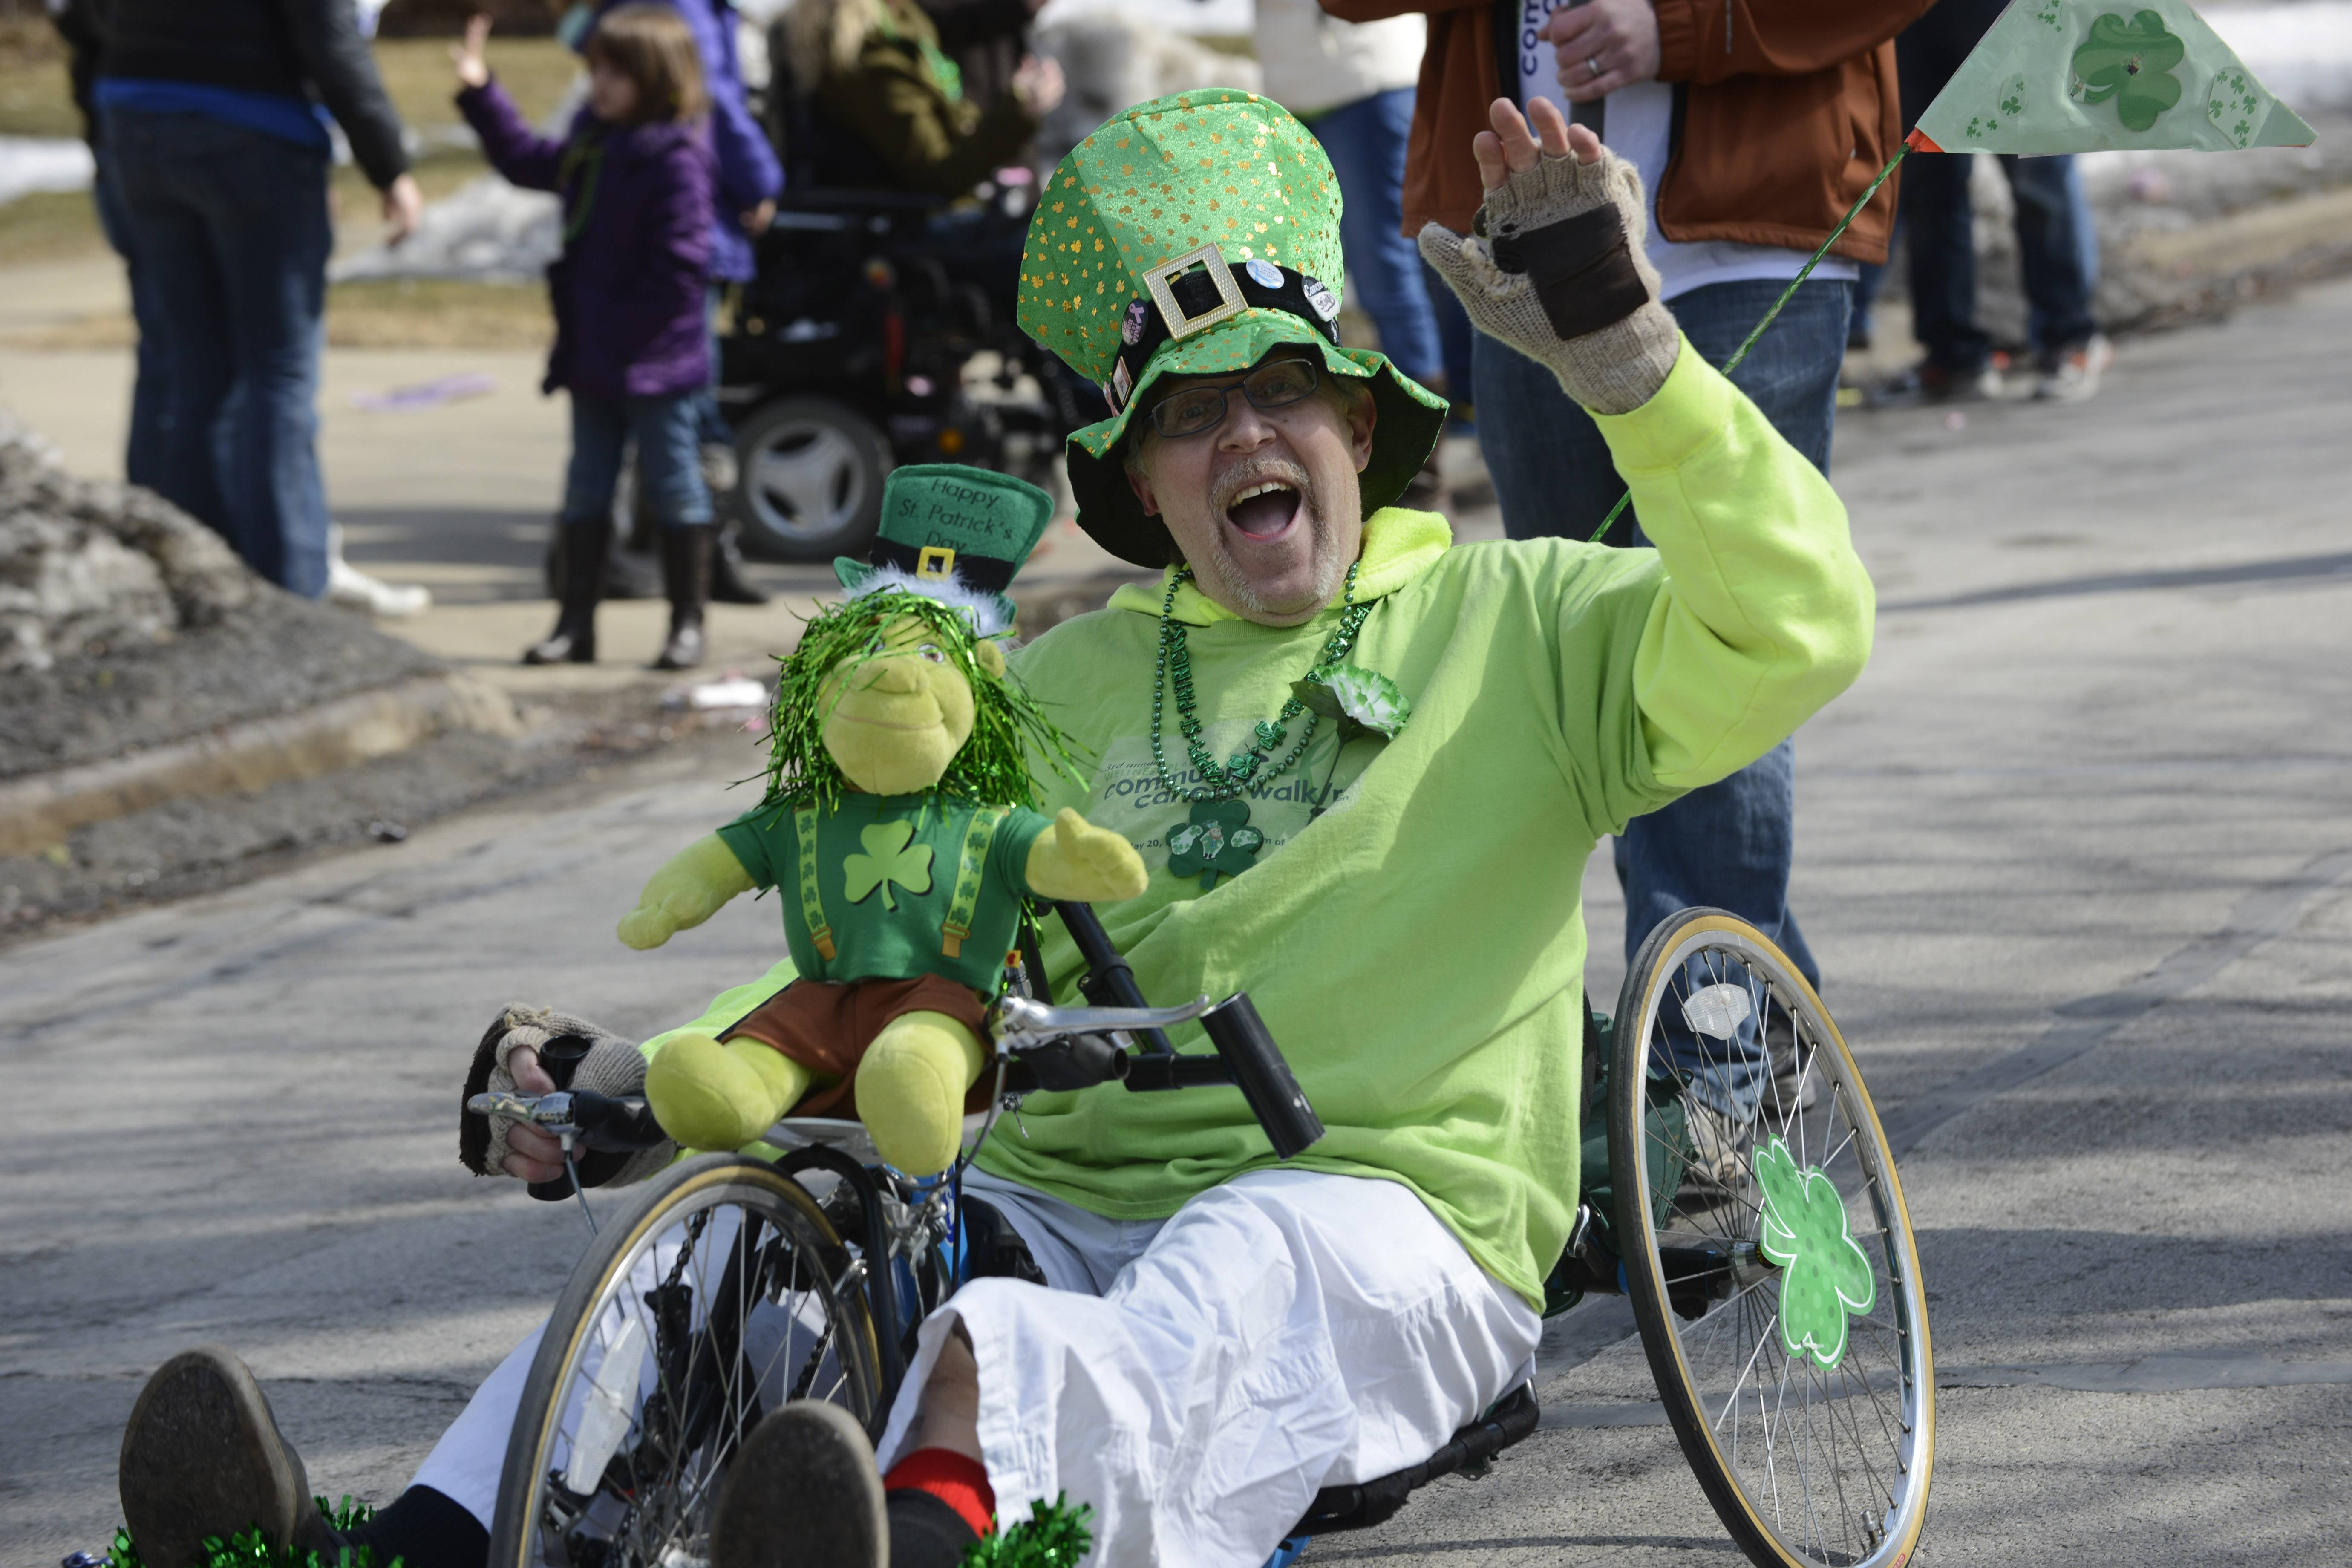 Thomas Hoff, a volunteer with the Wellness Place, waves to onlookers along Wood Street as he rides a handcycle during the Palatine St. Patrick's Day Parade Saturday.